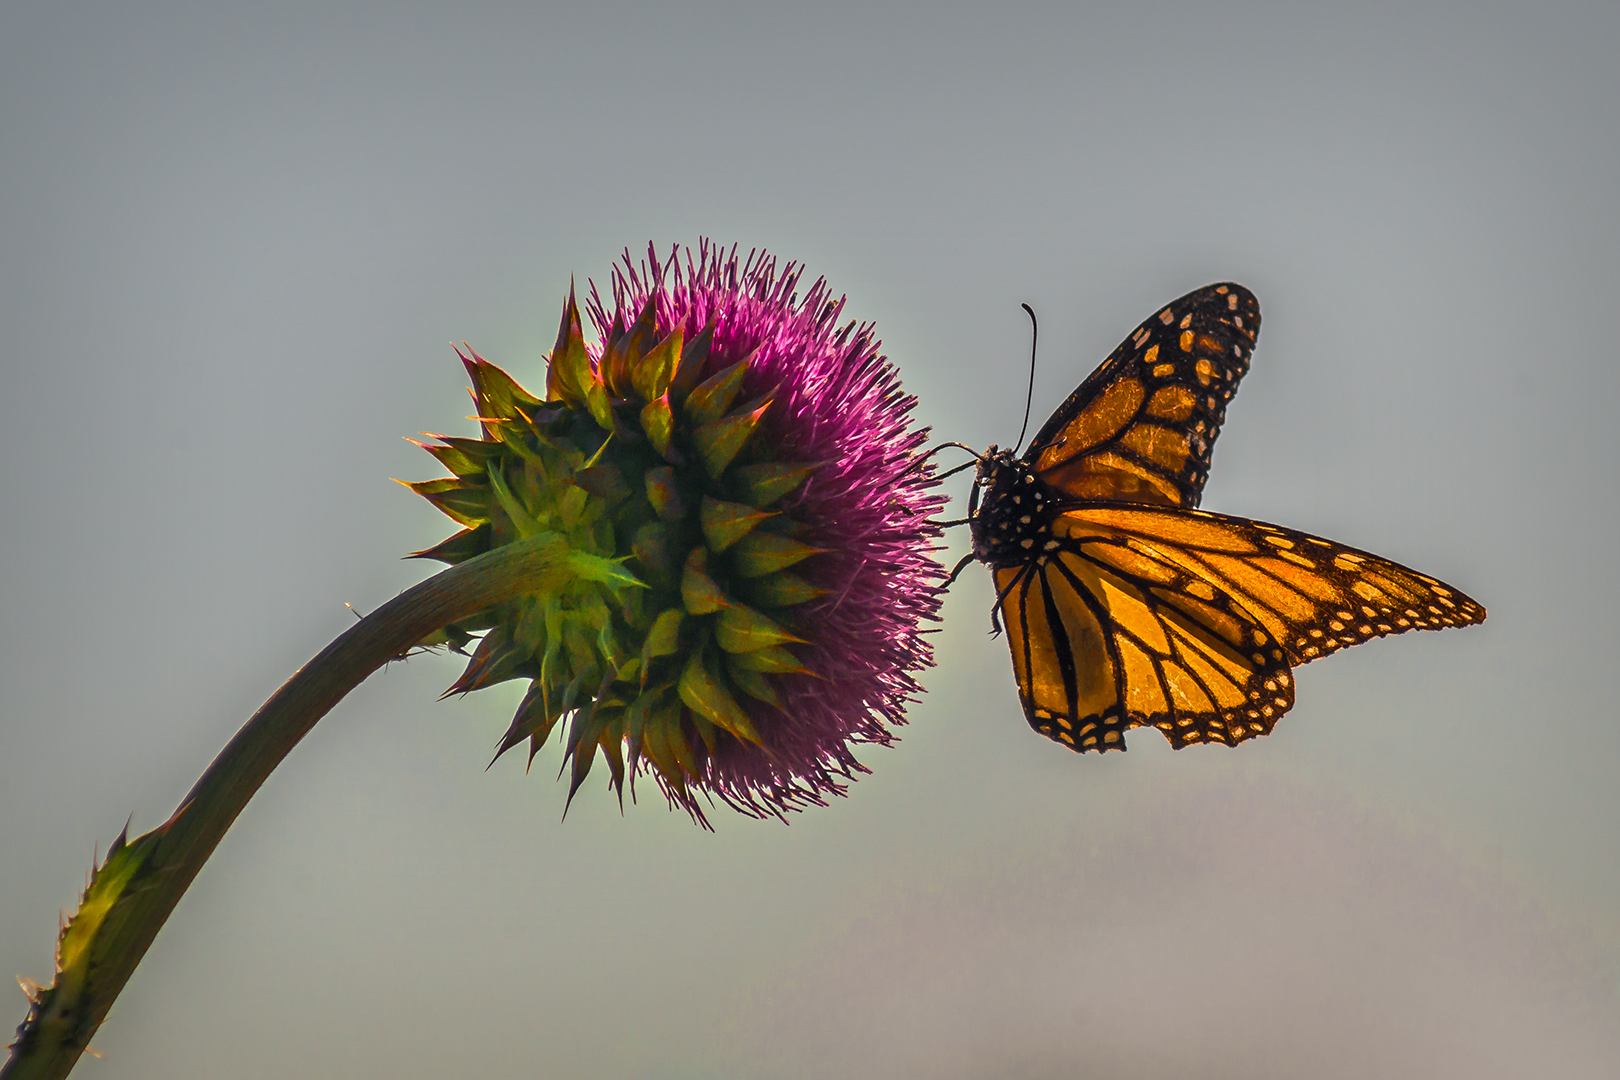 Nature_Monarch Butterfly on a Thistle_Ben Stoffl_A